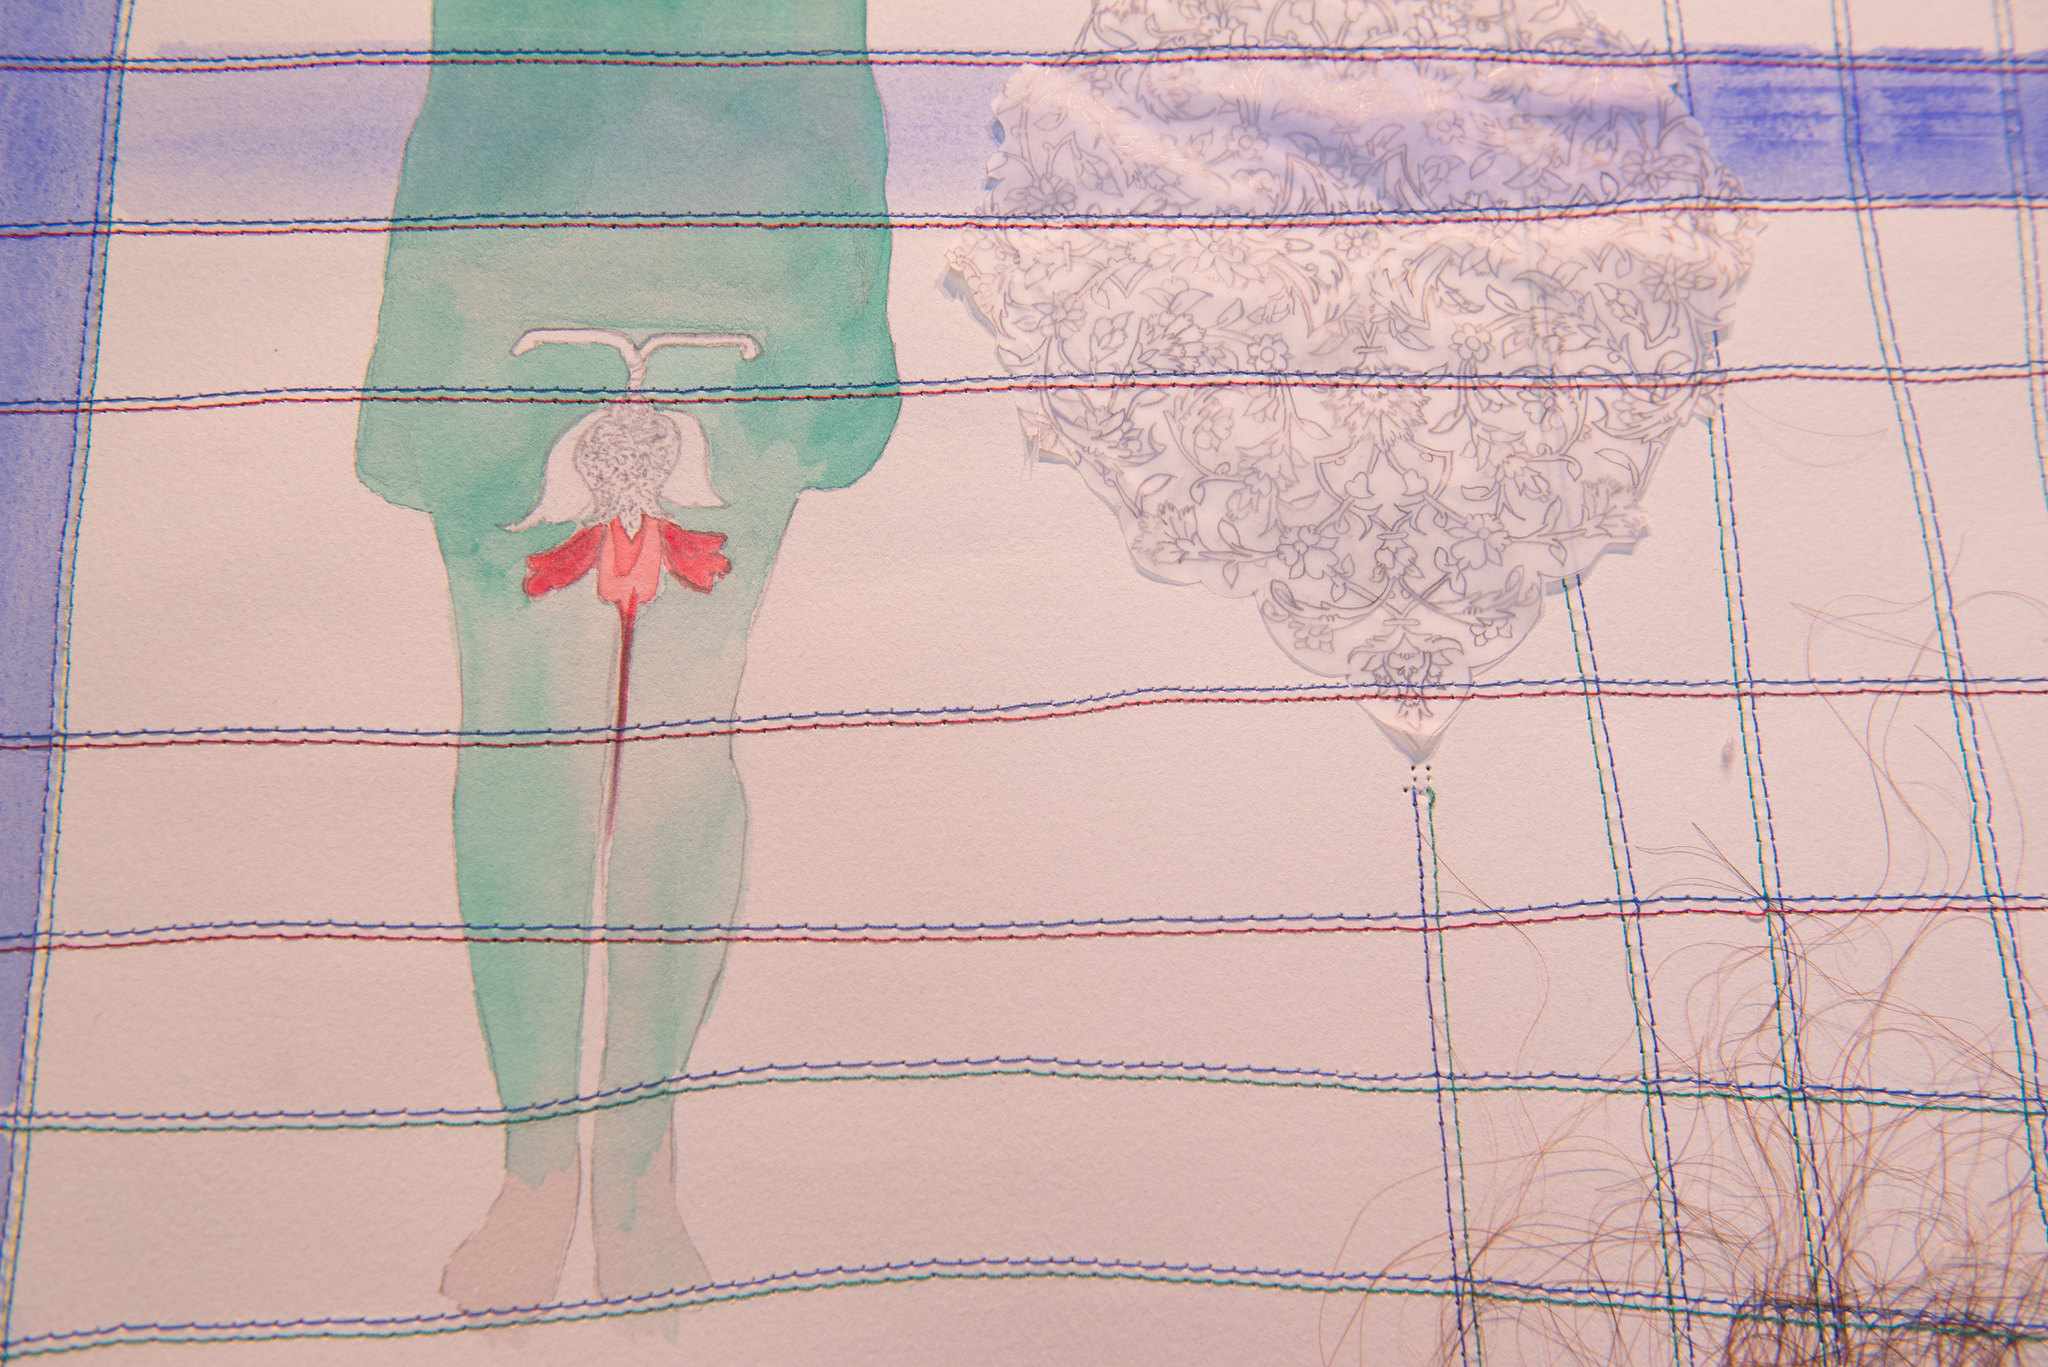 detail of artwork with collaged drawings and sewn thread